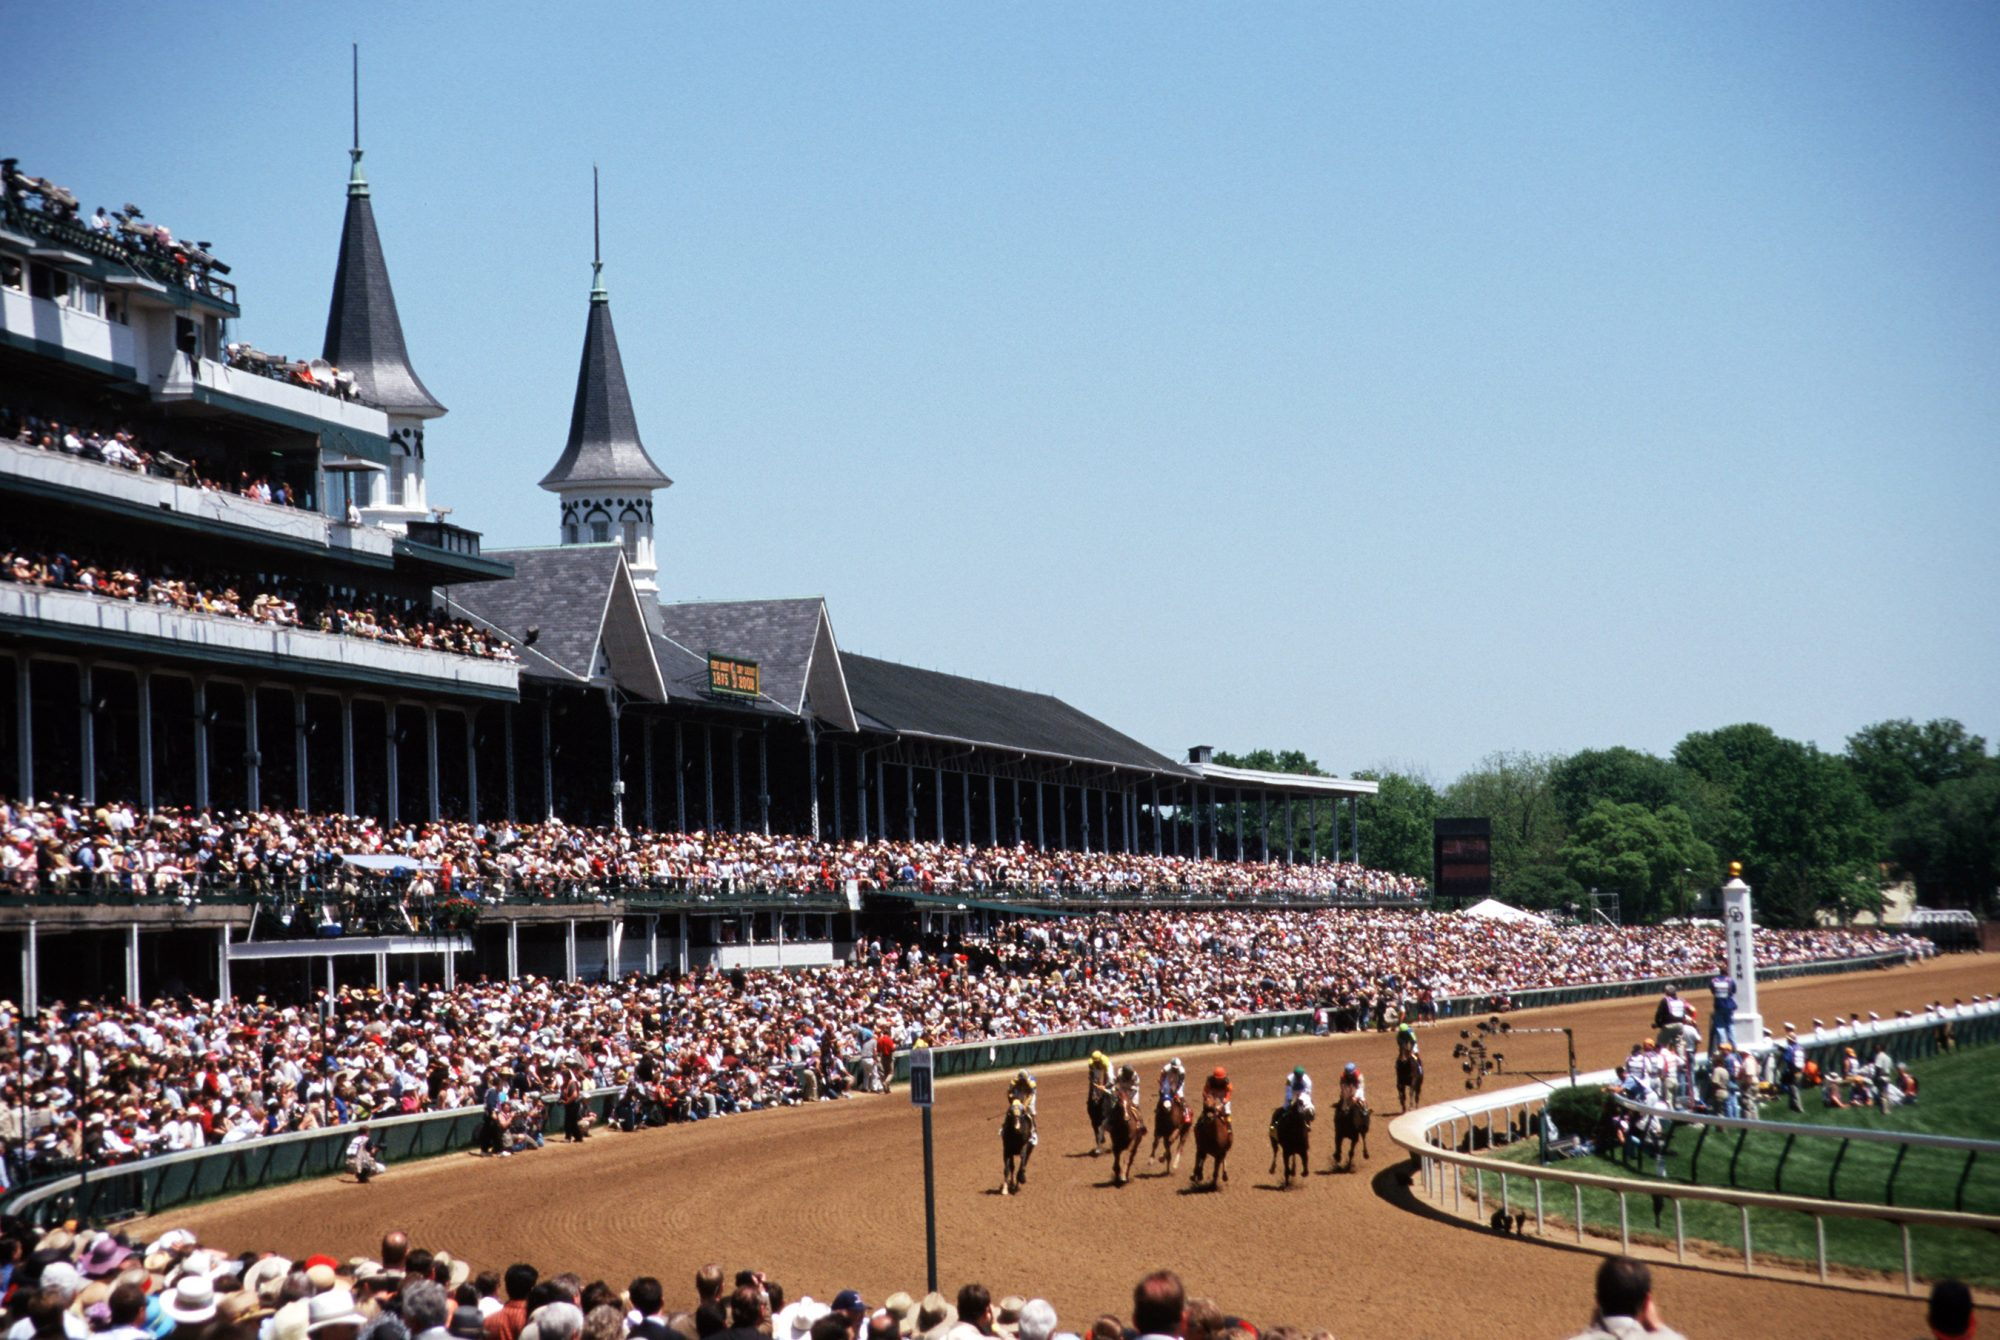 Kentucky, Louisville, Churchill Downs, Kentucky Derby, Run For The Roses, Grandstand And Horses Racing On Track.